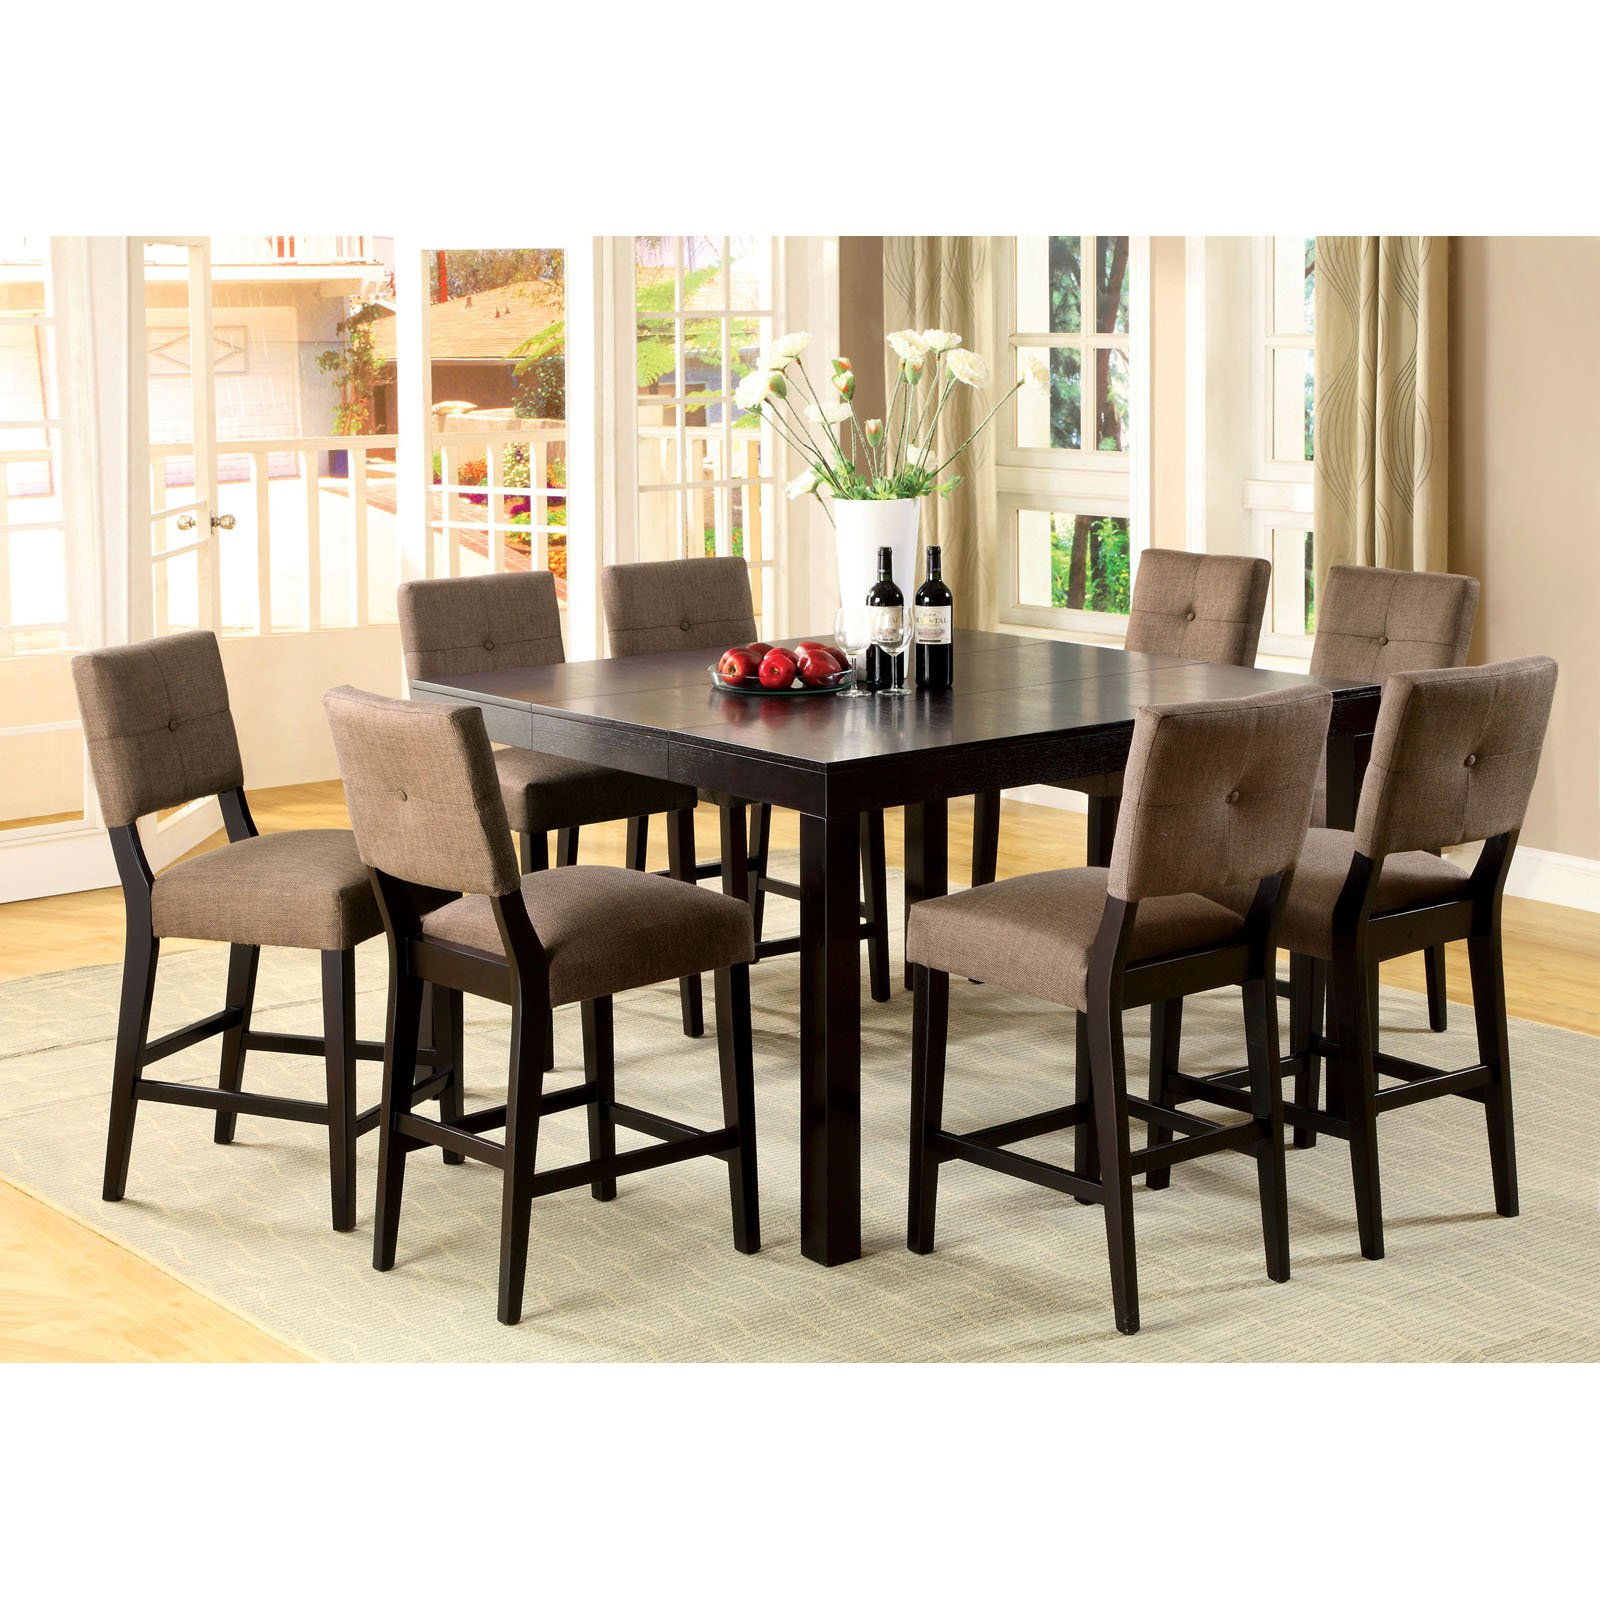 Furniture of America Jones 7 Piece Espresso Counter Height Dining Room Set by Enitial Lab